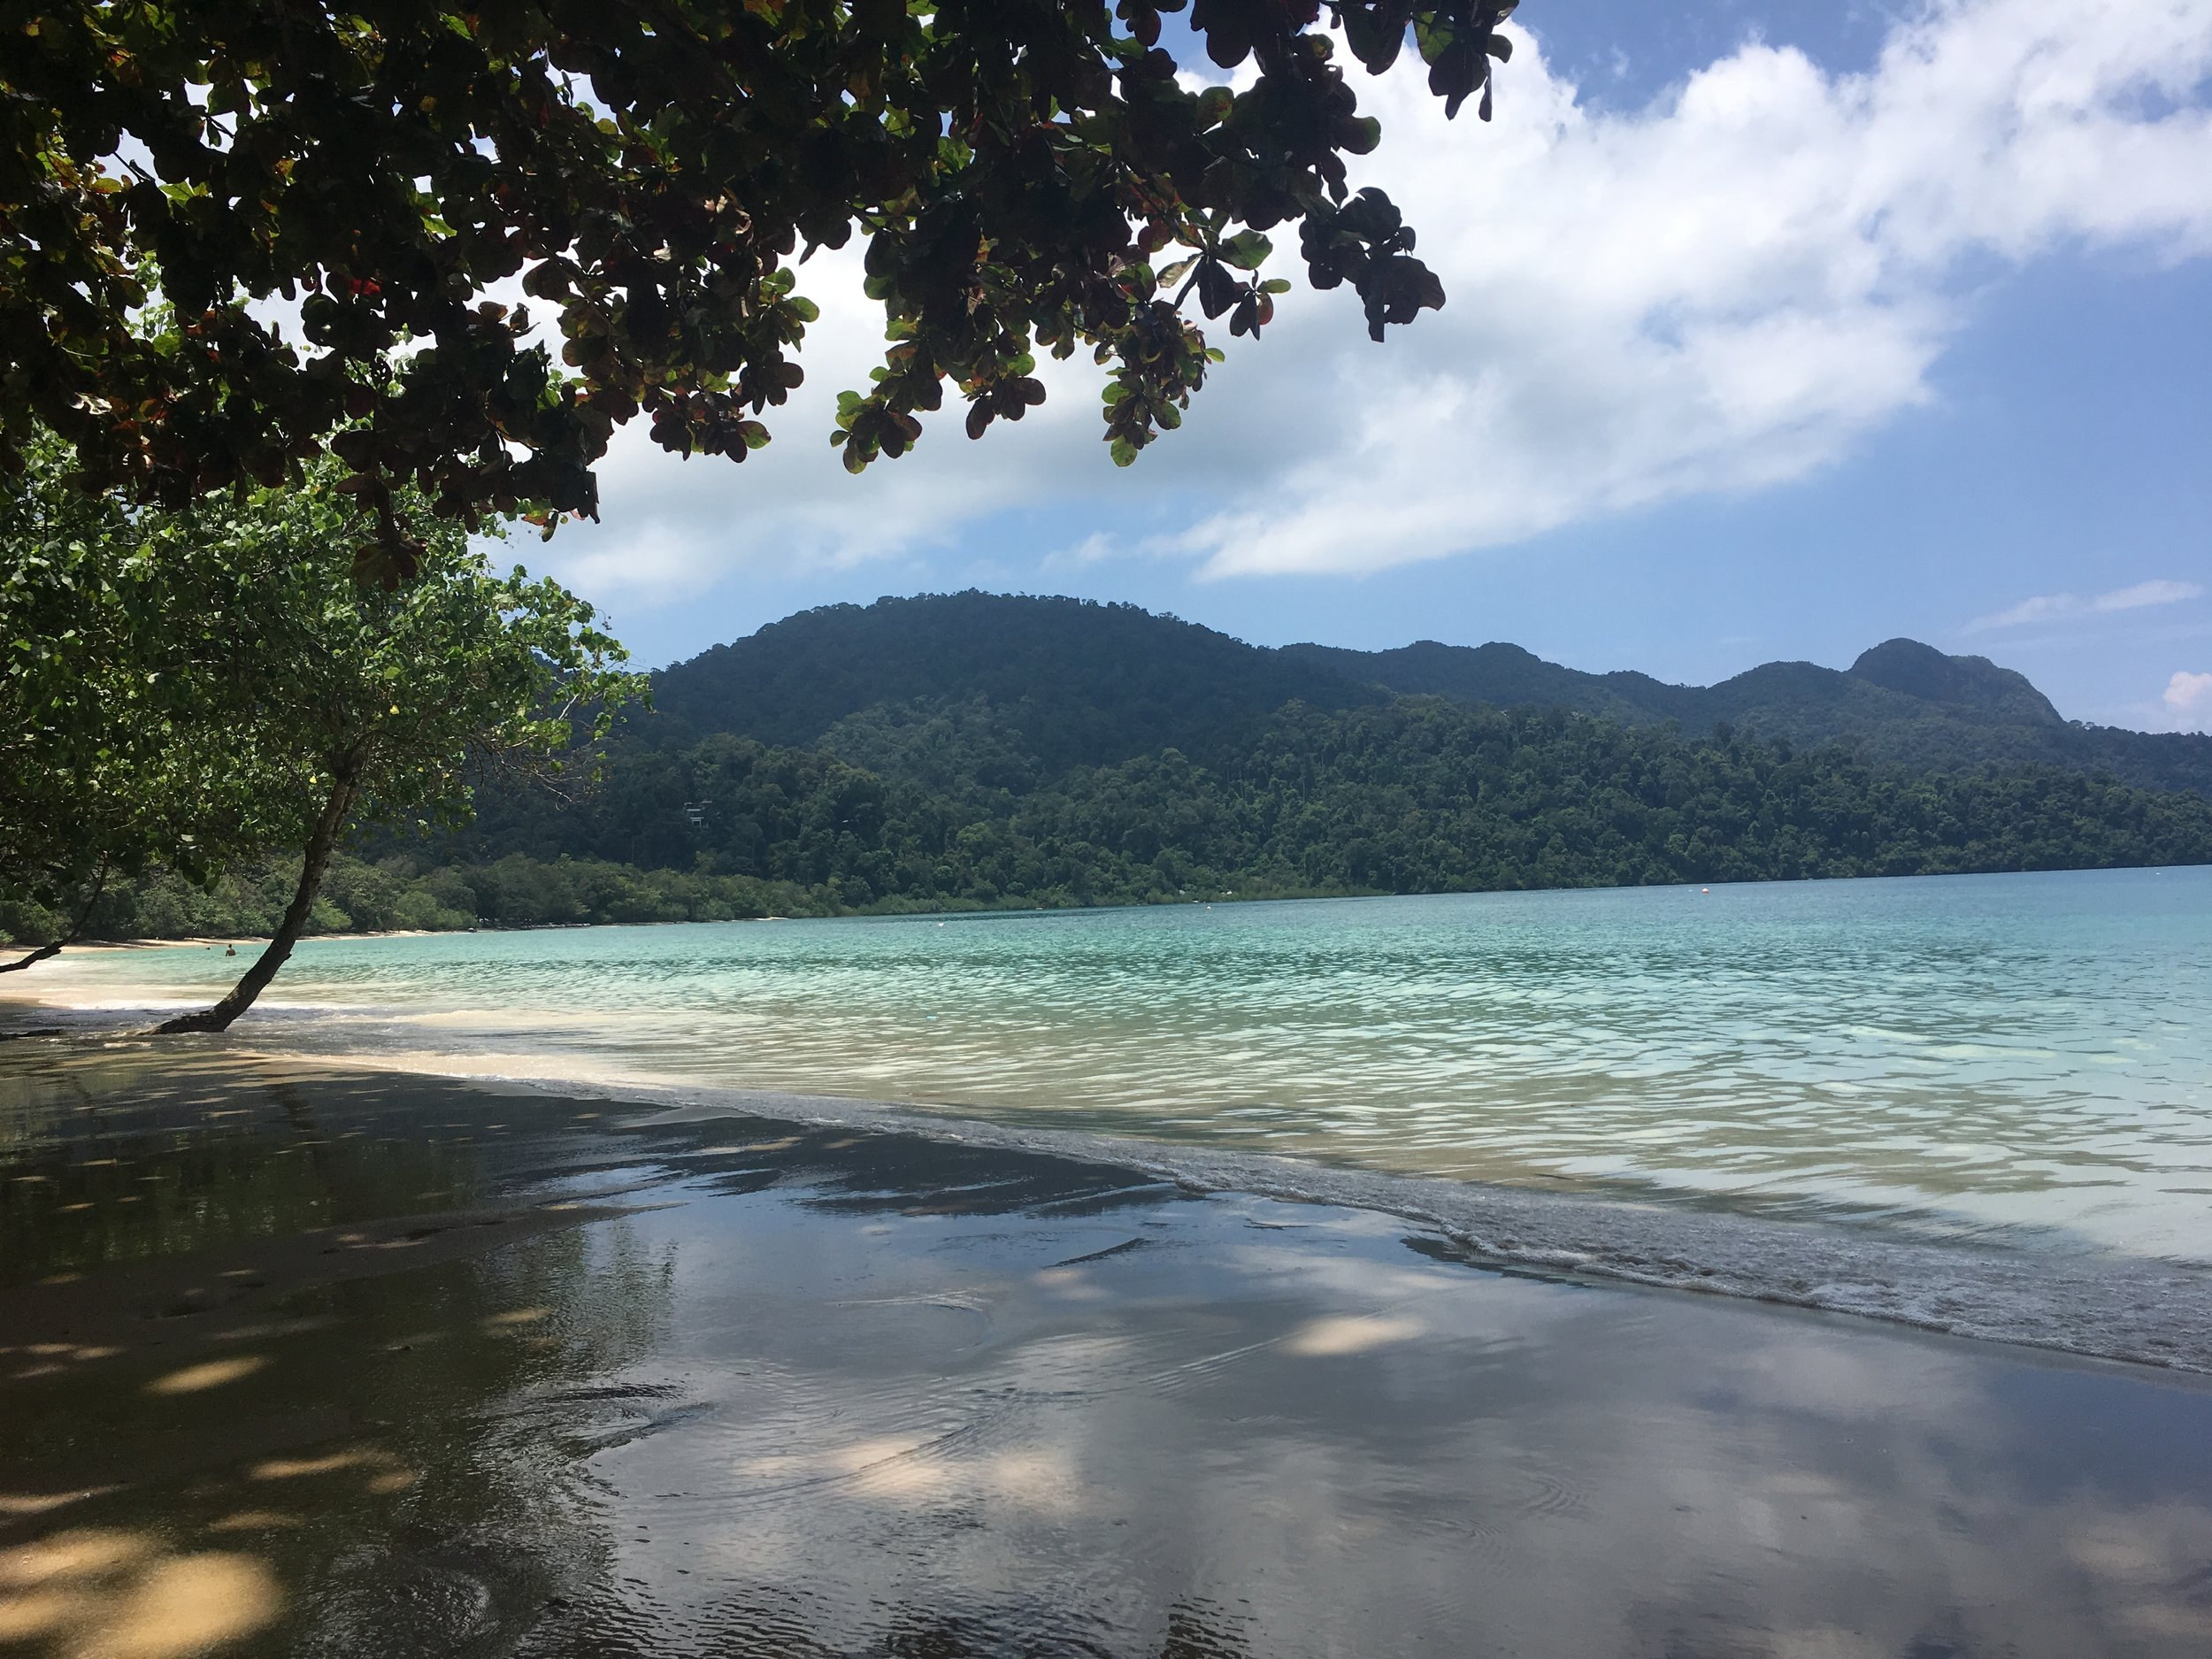 The Datai bay with its turquoise waters and white sandy beaches.